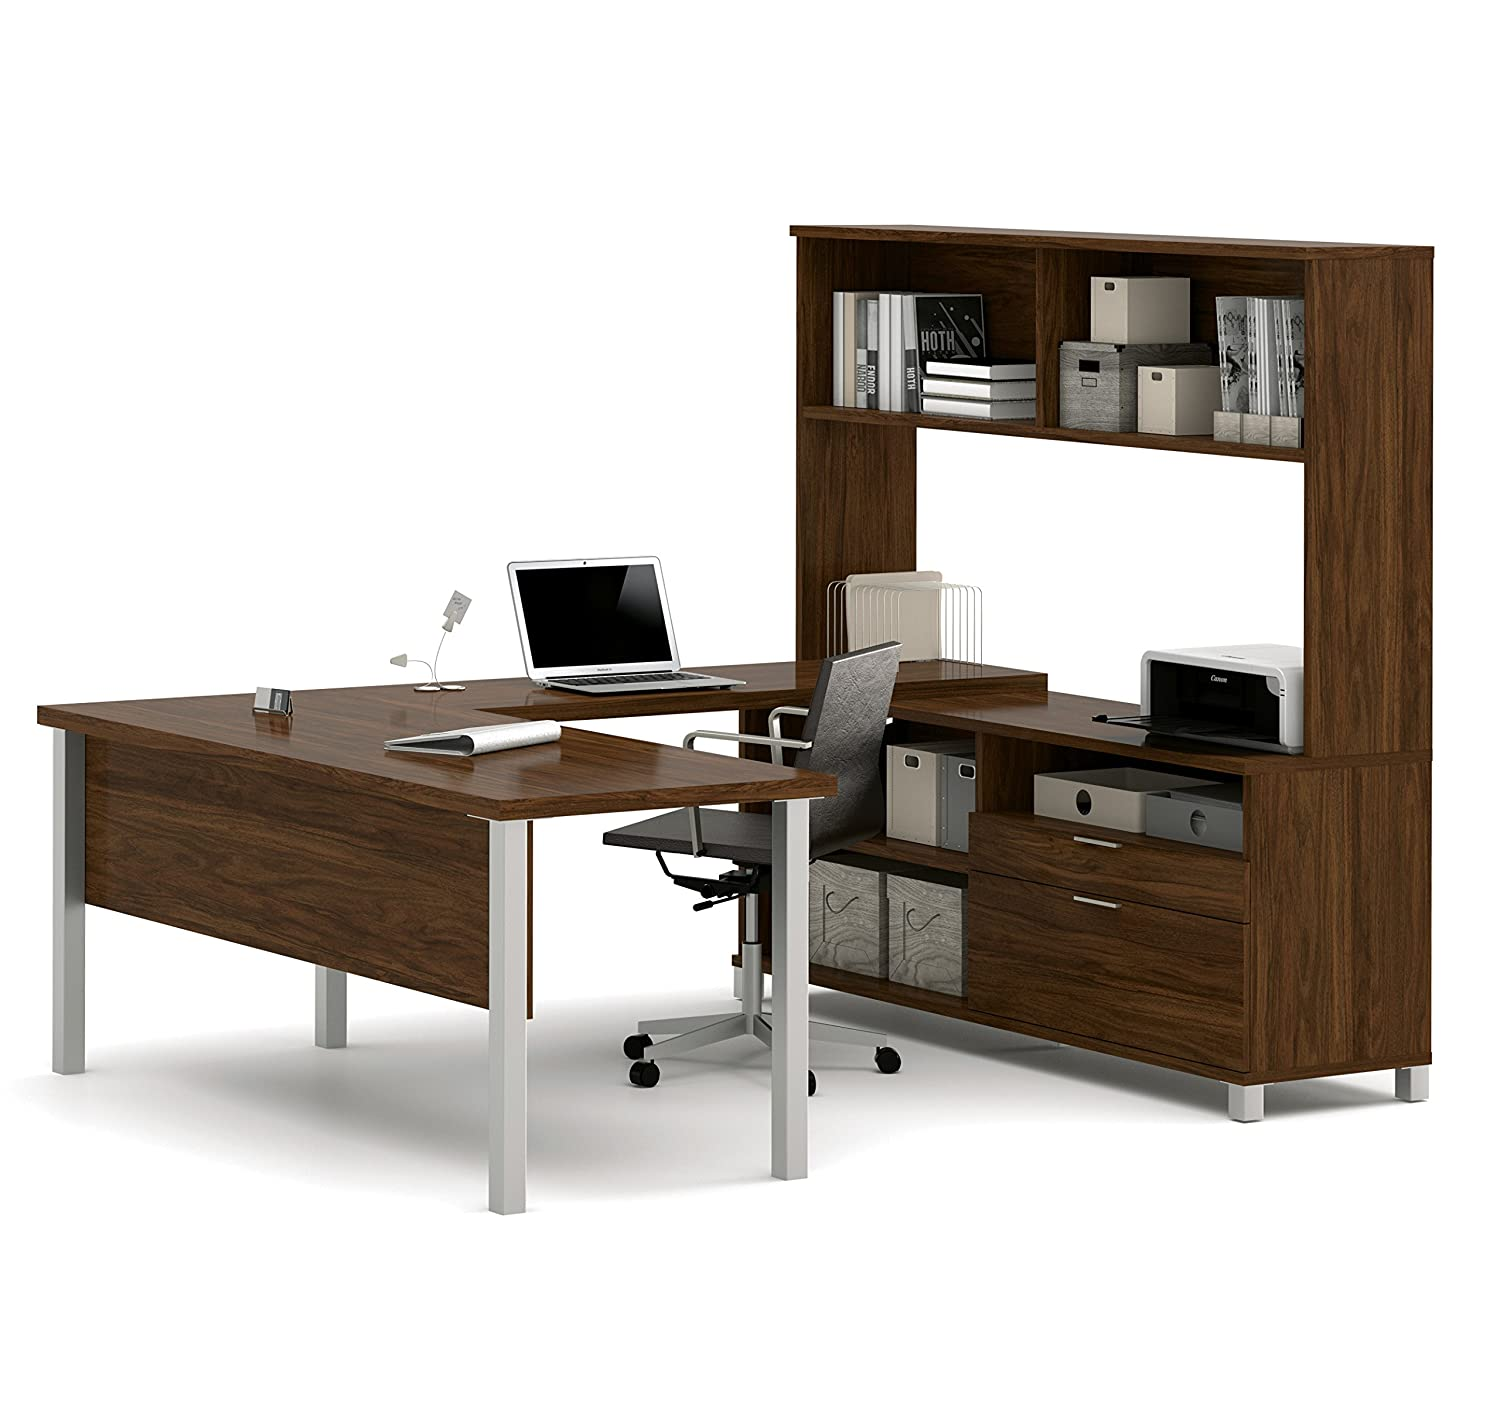 amazon com bestar u shaped desk with hutch kitchen dining rh amazon com bestar u shaped desk costco bestar ridgeley u-shaped desk in dark chocolate and white chocolate